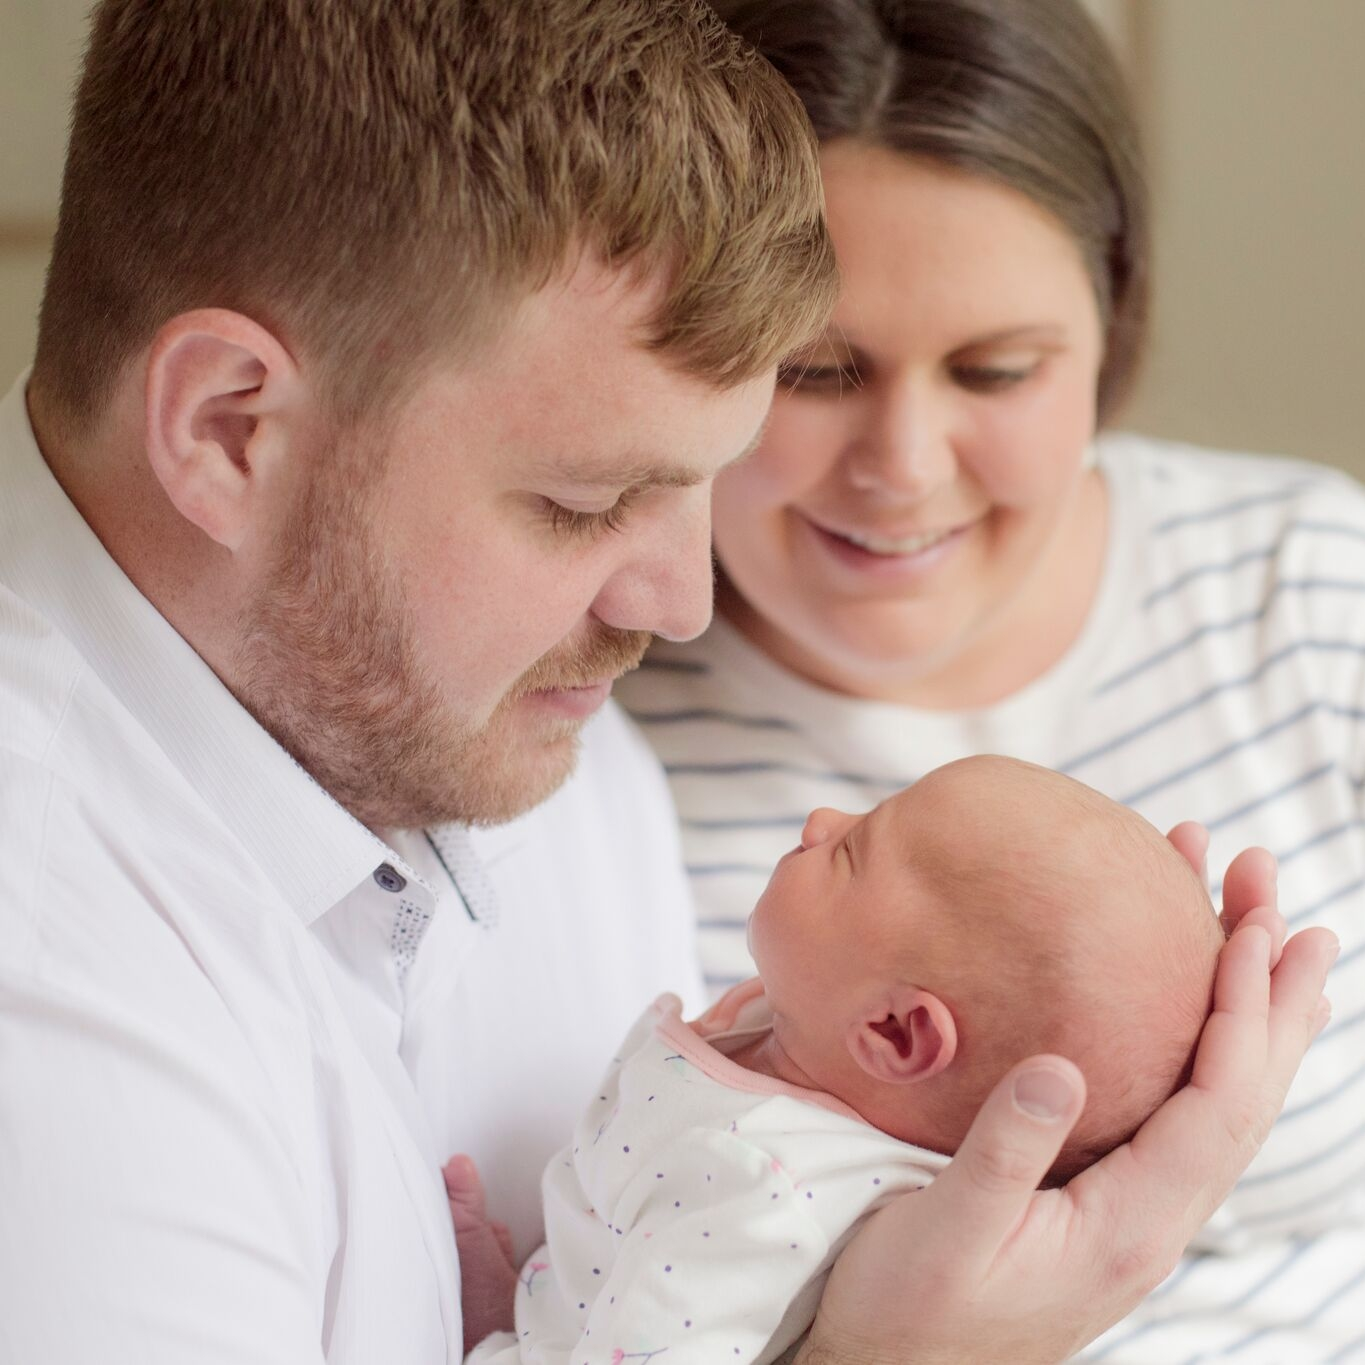 family photography newborn baby photoshoot with parents mum dad doula sydney birth and postparum services